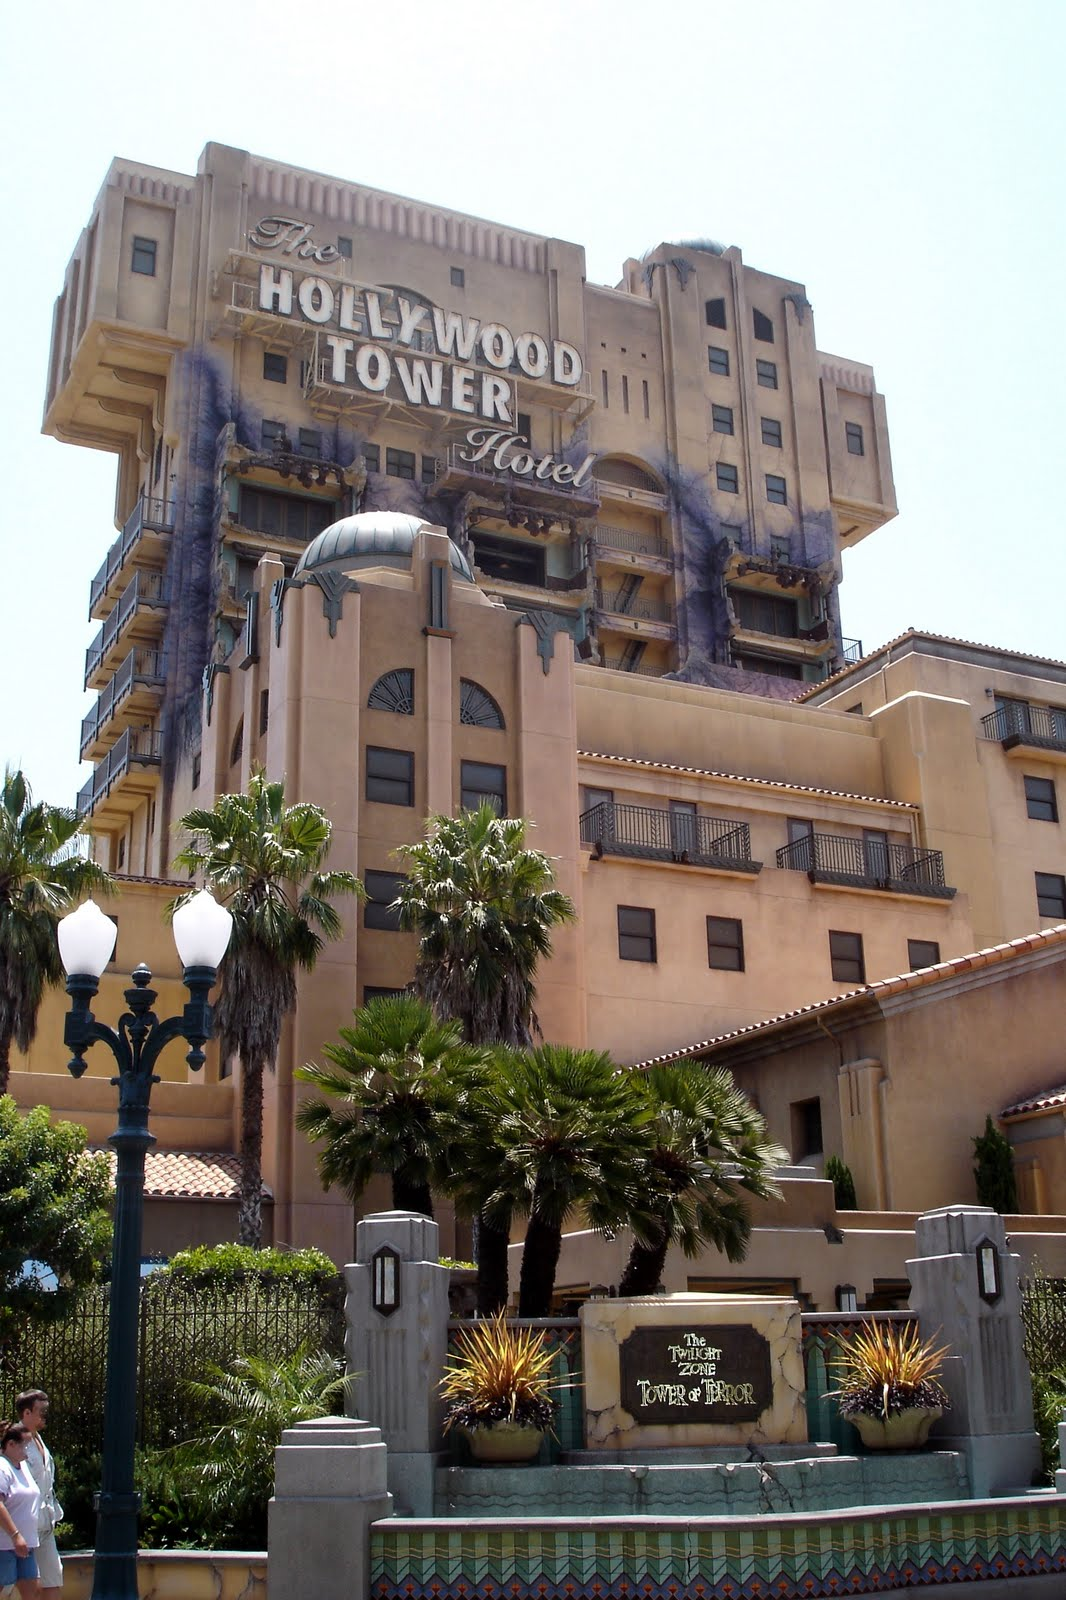 DisneyShawn: Immerse Yourself At The Hollywood Tower Hotel